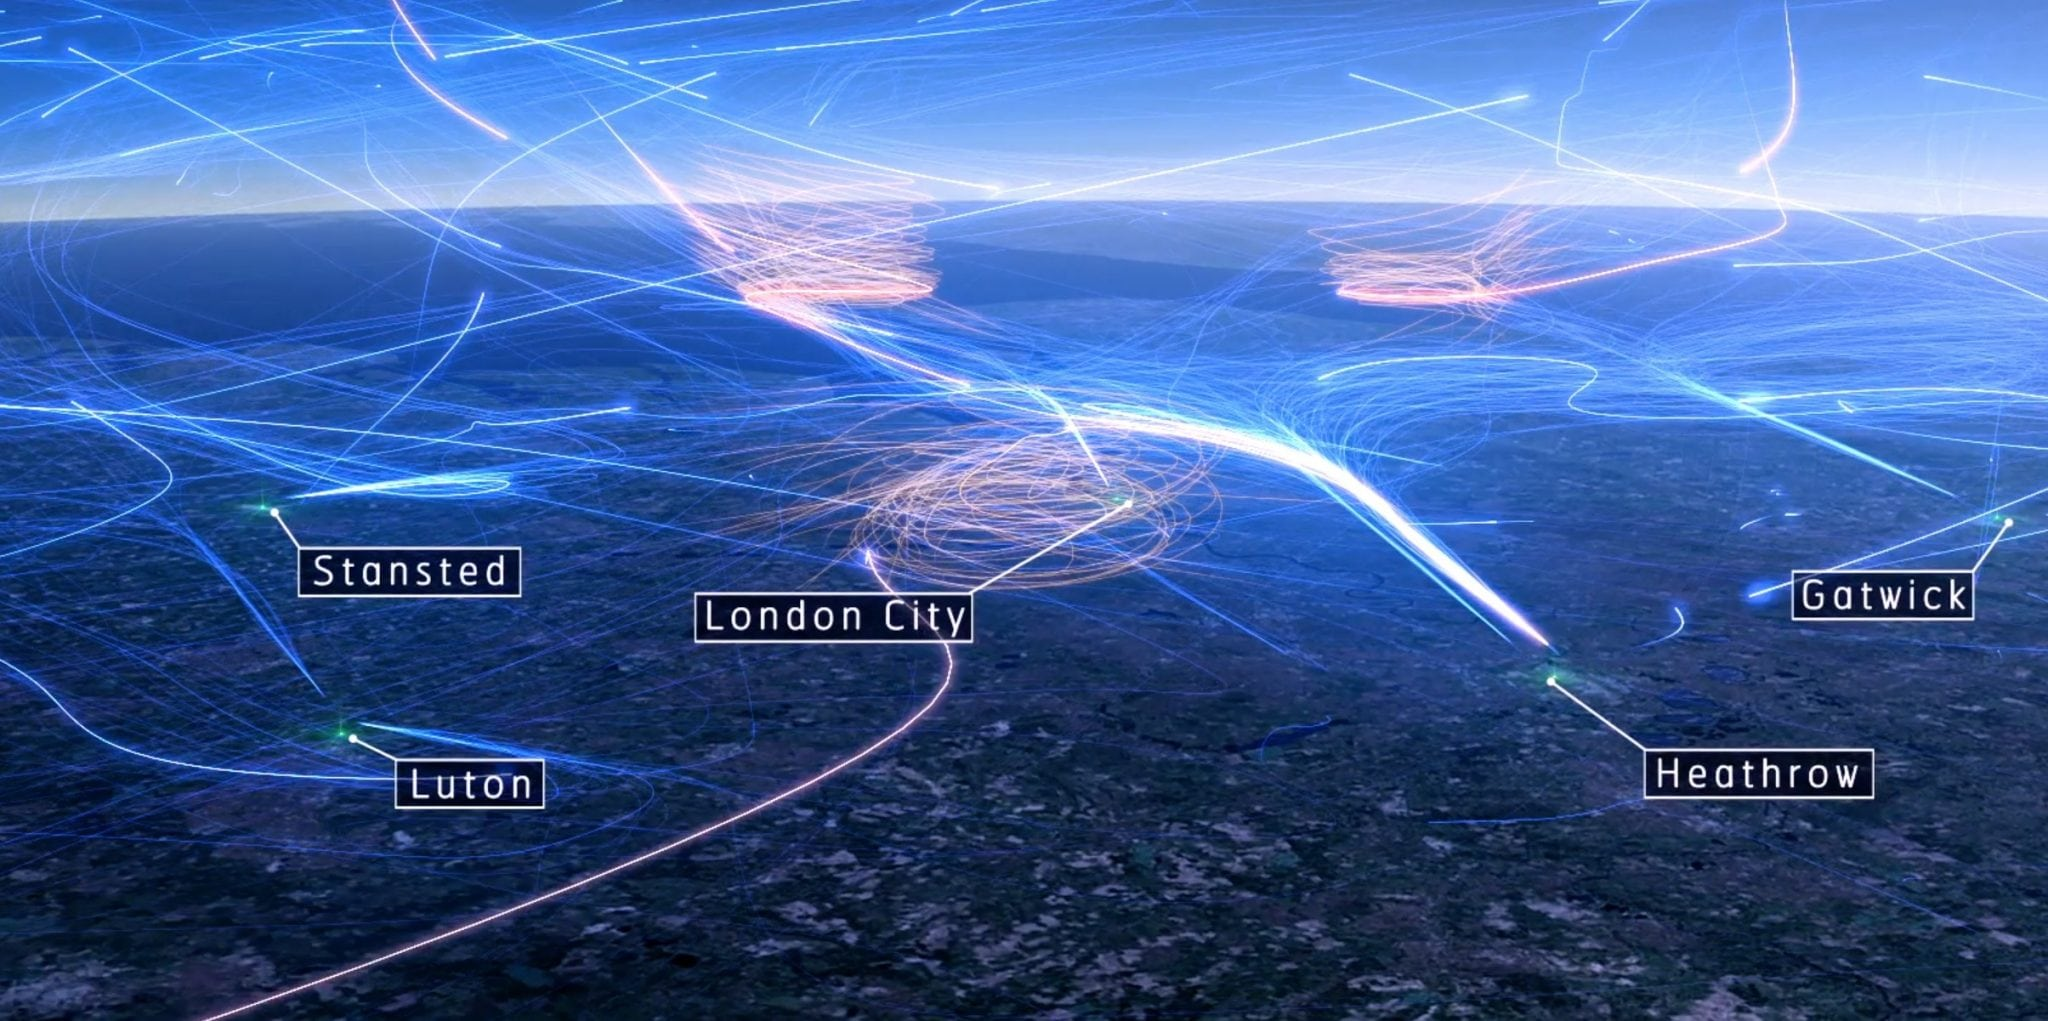 Heathrow's holding stacks – three shown here in orange – provide a continuous stream of arriving air traffic